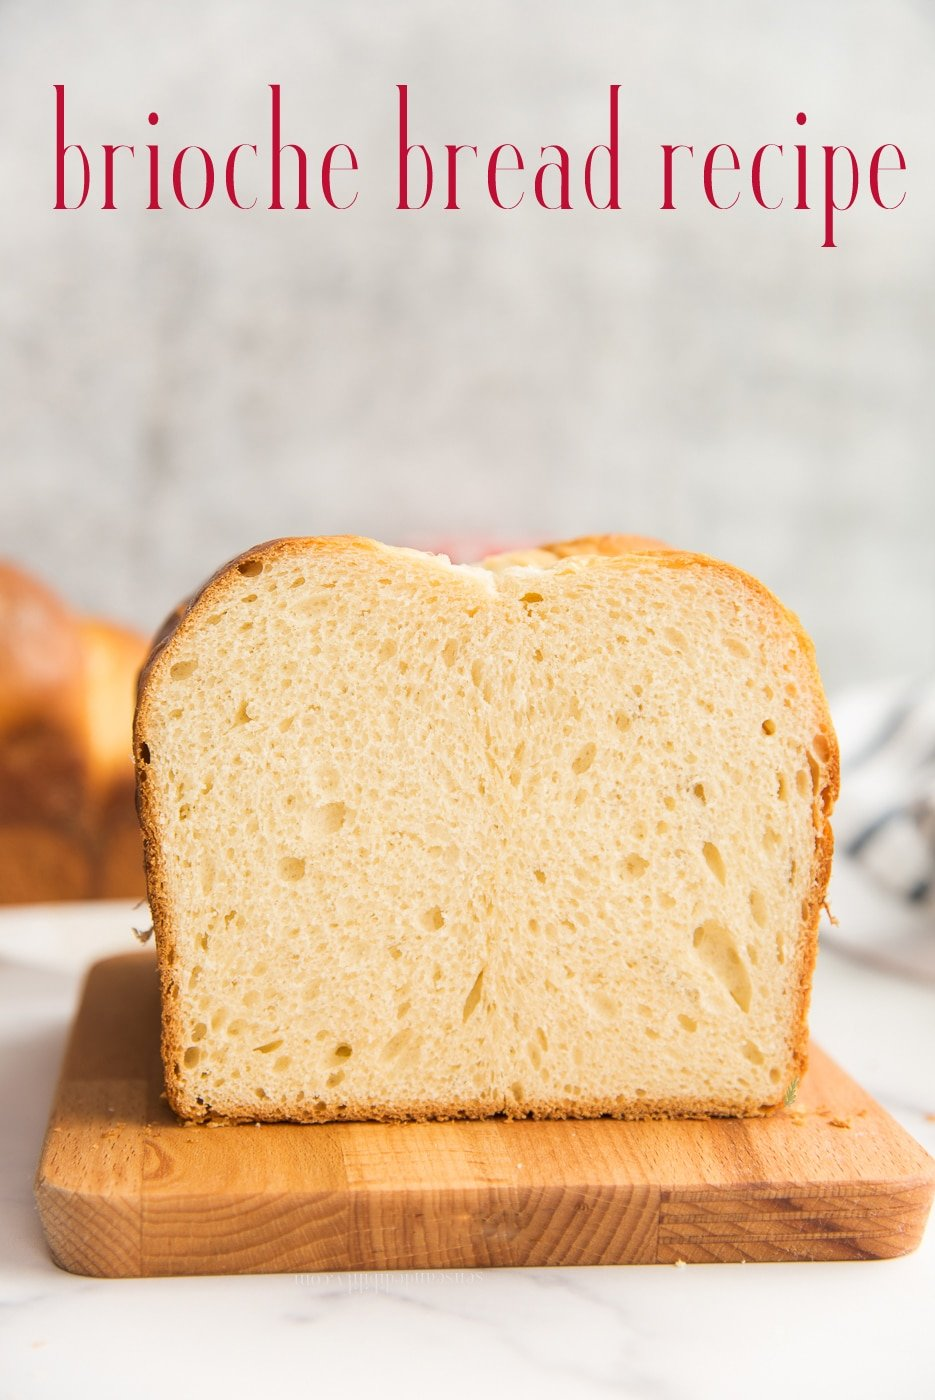 Brioche is the Queen of all breads. This enriched bread is made with eggs and butter, which makes it the best thing since...well, since sliced bread. Use it to make french toast, sandwiches, bread puddings, or enjoy it on its own. #brioche #frenchbreads #enrichedbreads #enricheddough #bread #loafofbread #breadmaking #breadbaking #classicfrenchbread #breadrecipe #bakingbread #recetadepan #breadmaker #breadtechniques via @ediblesense